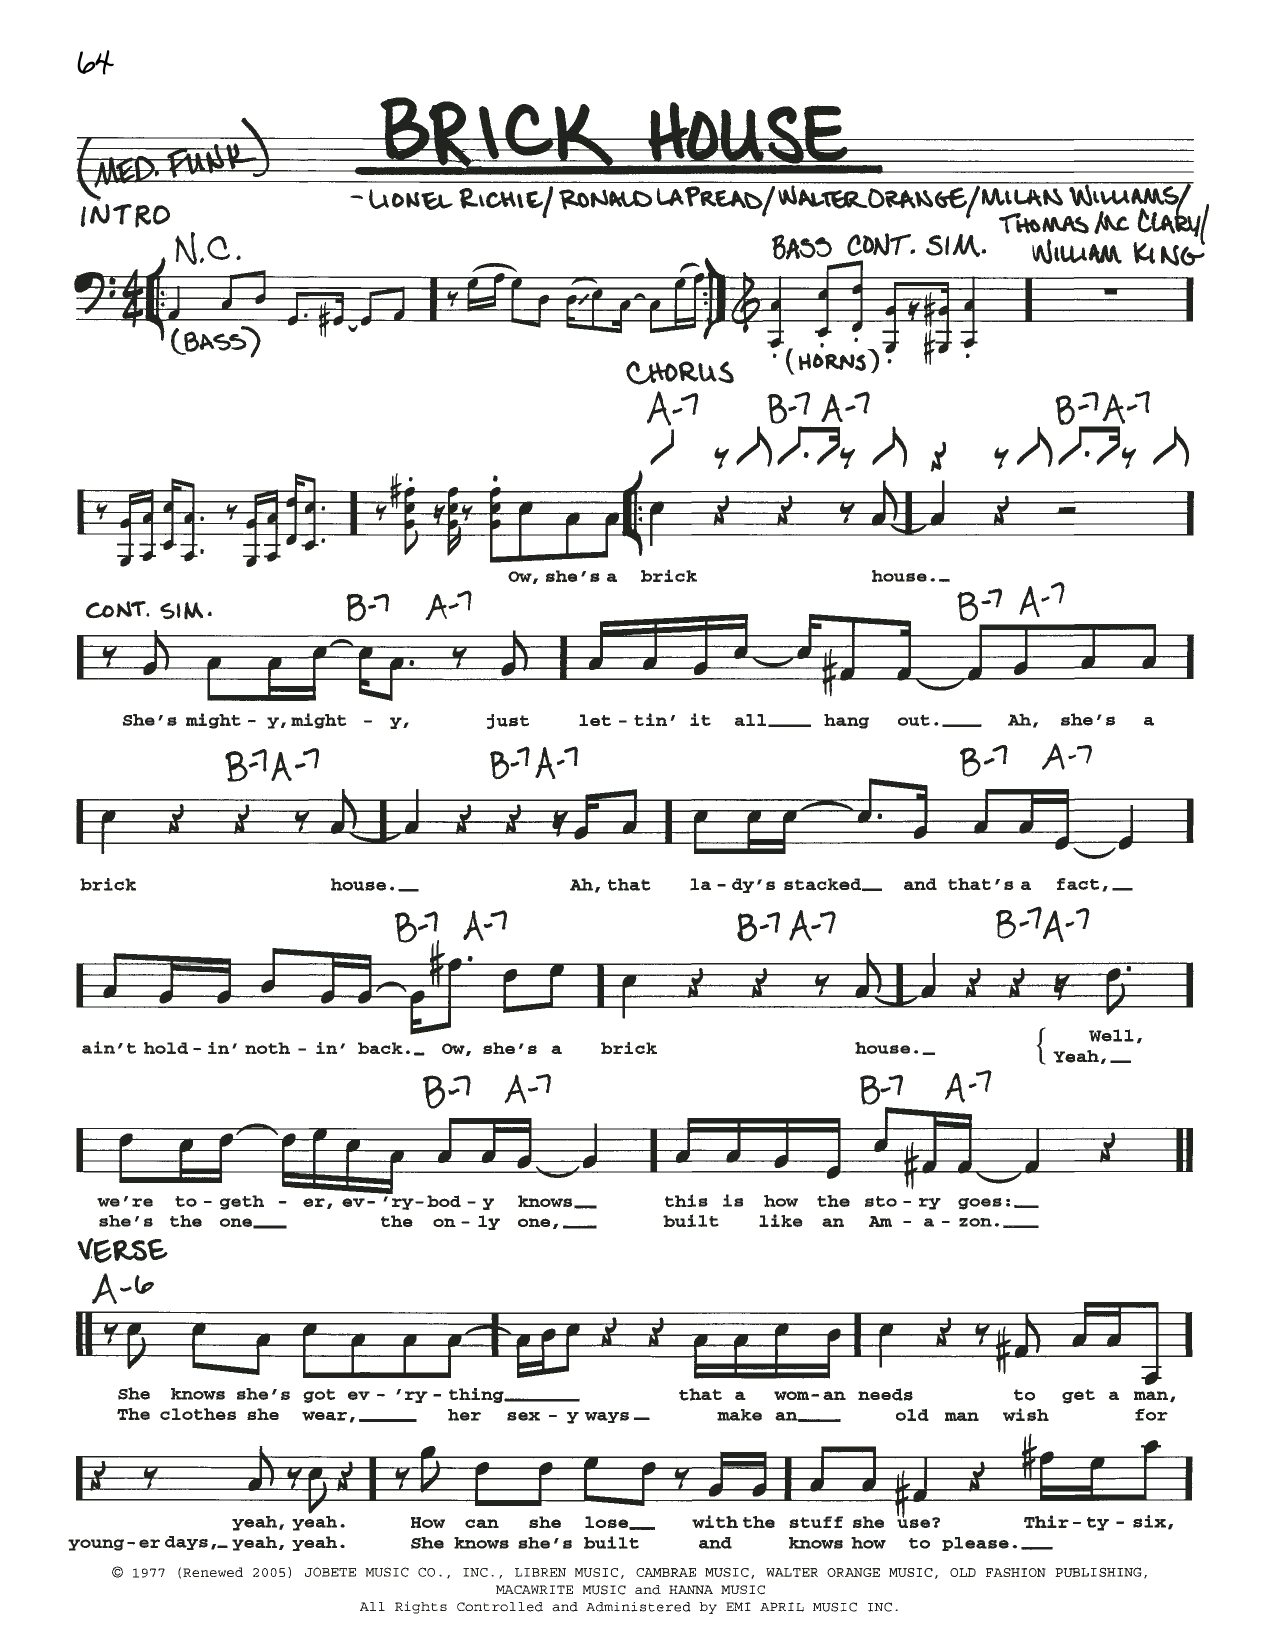 Commodores Brick House sheet music notes printable PDF score